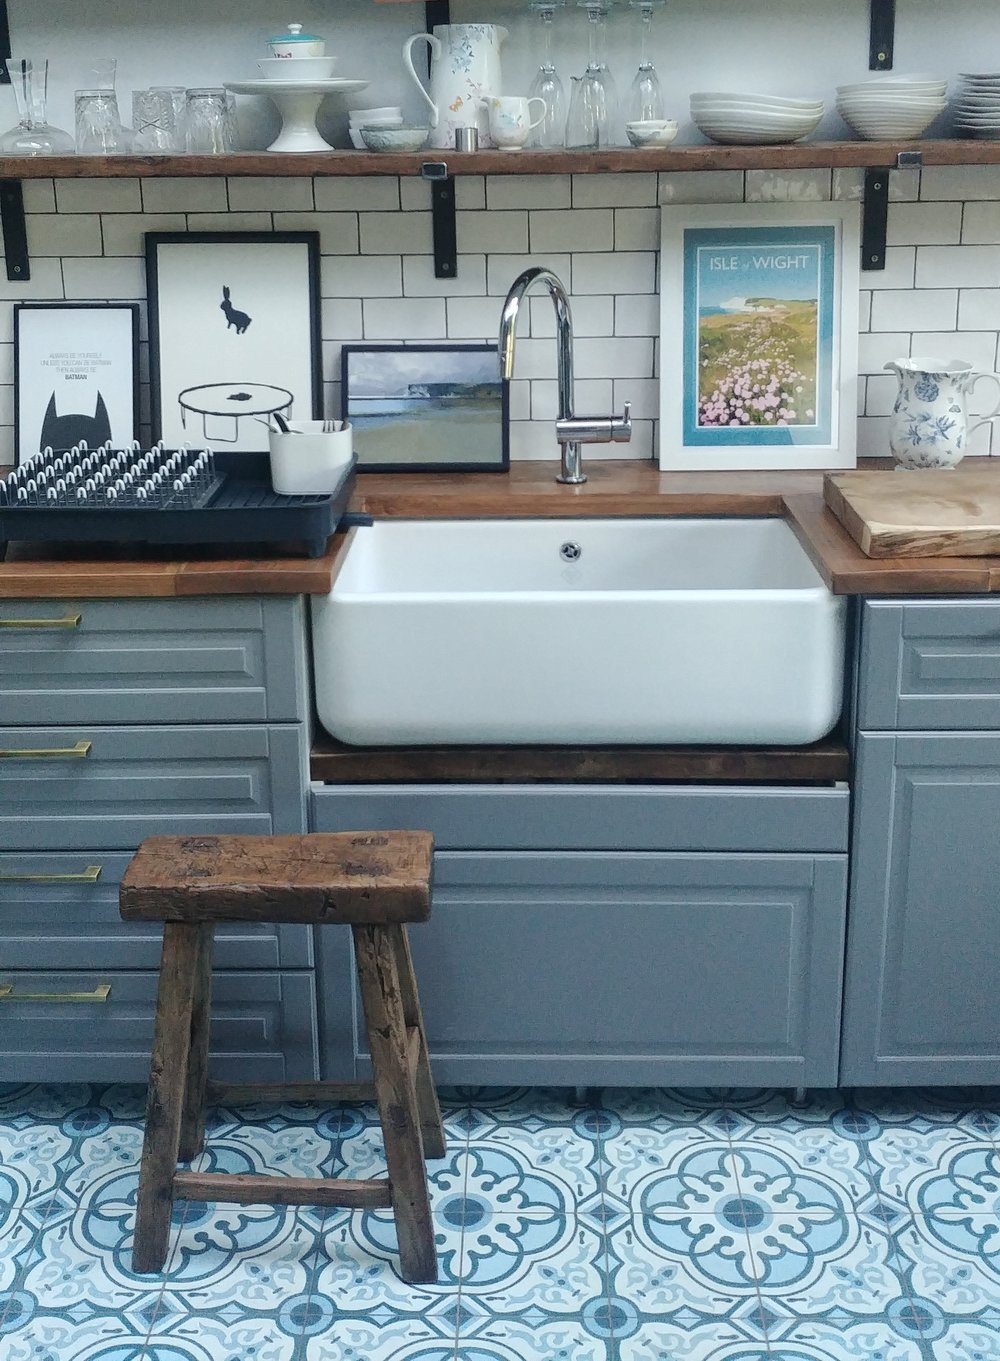 How To Fit A Belfast Sink On An Ikea Kitchen Cabinet — Simply The Nest